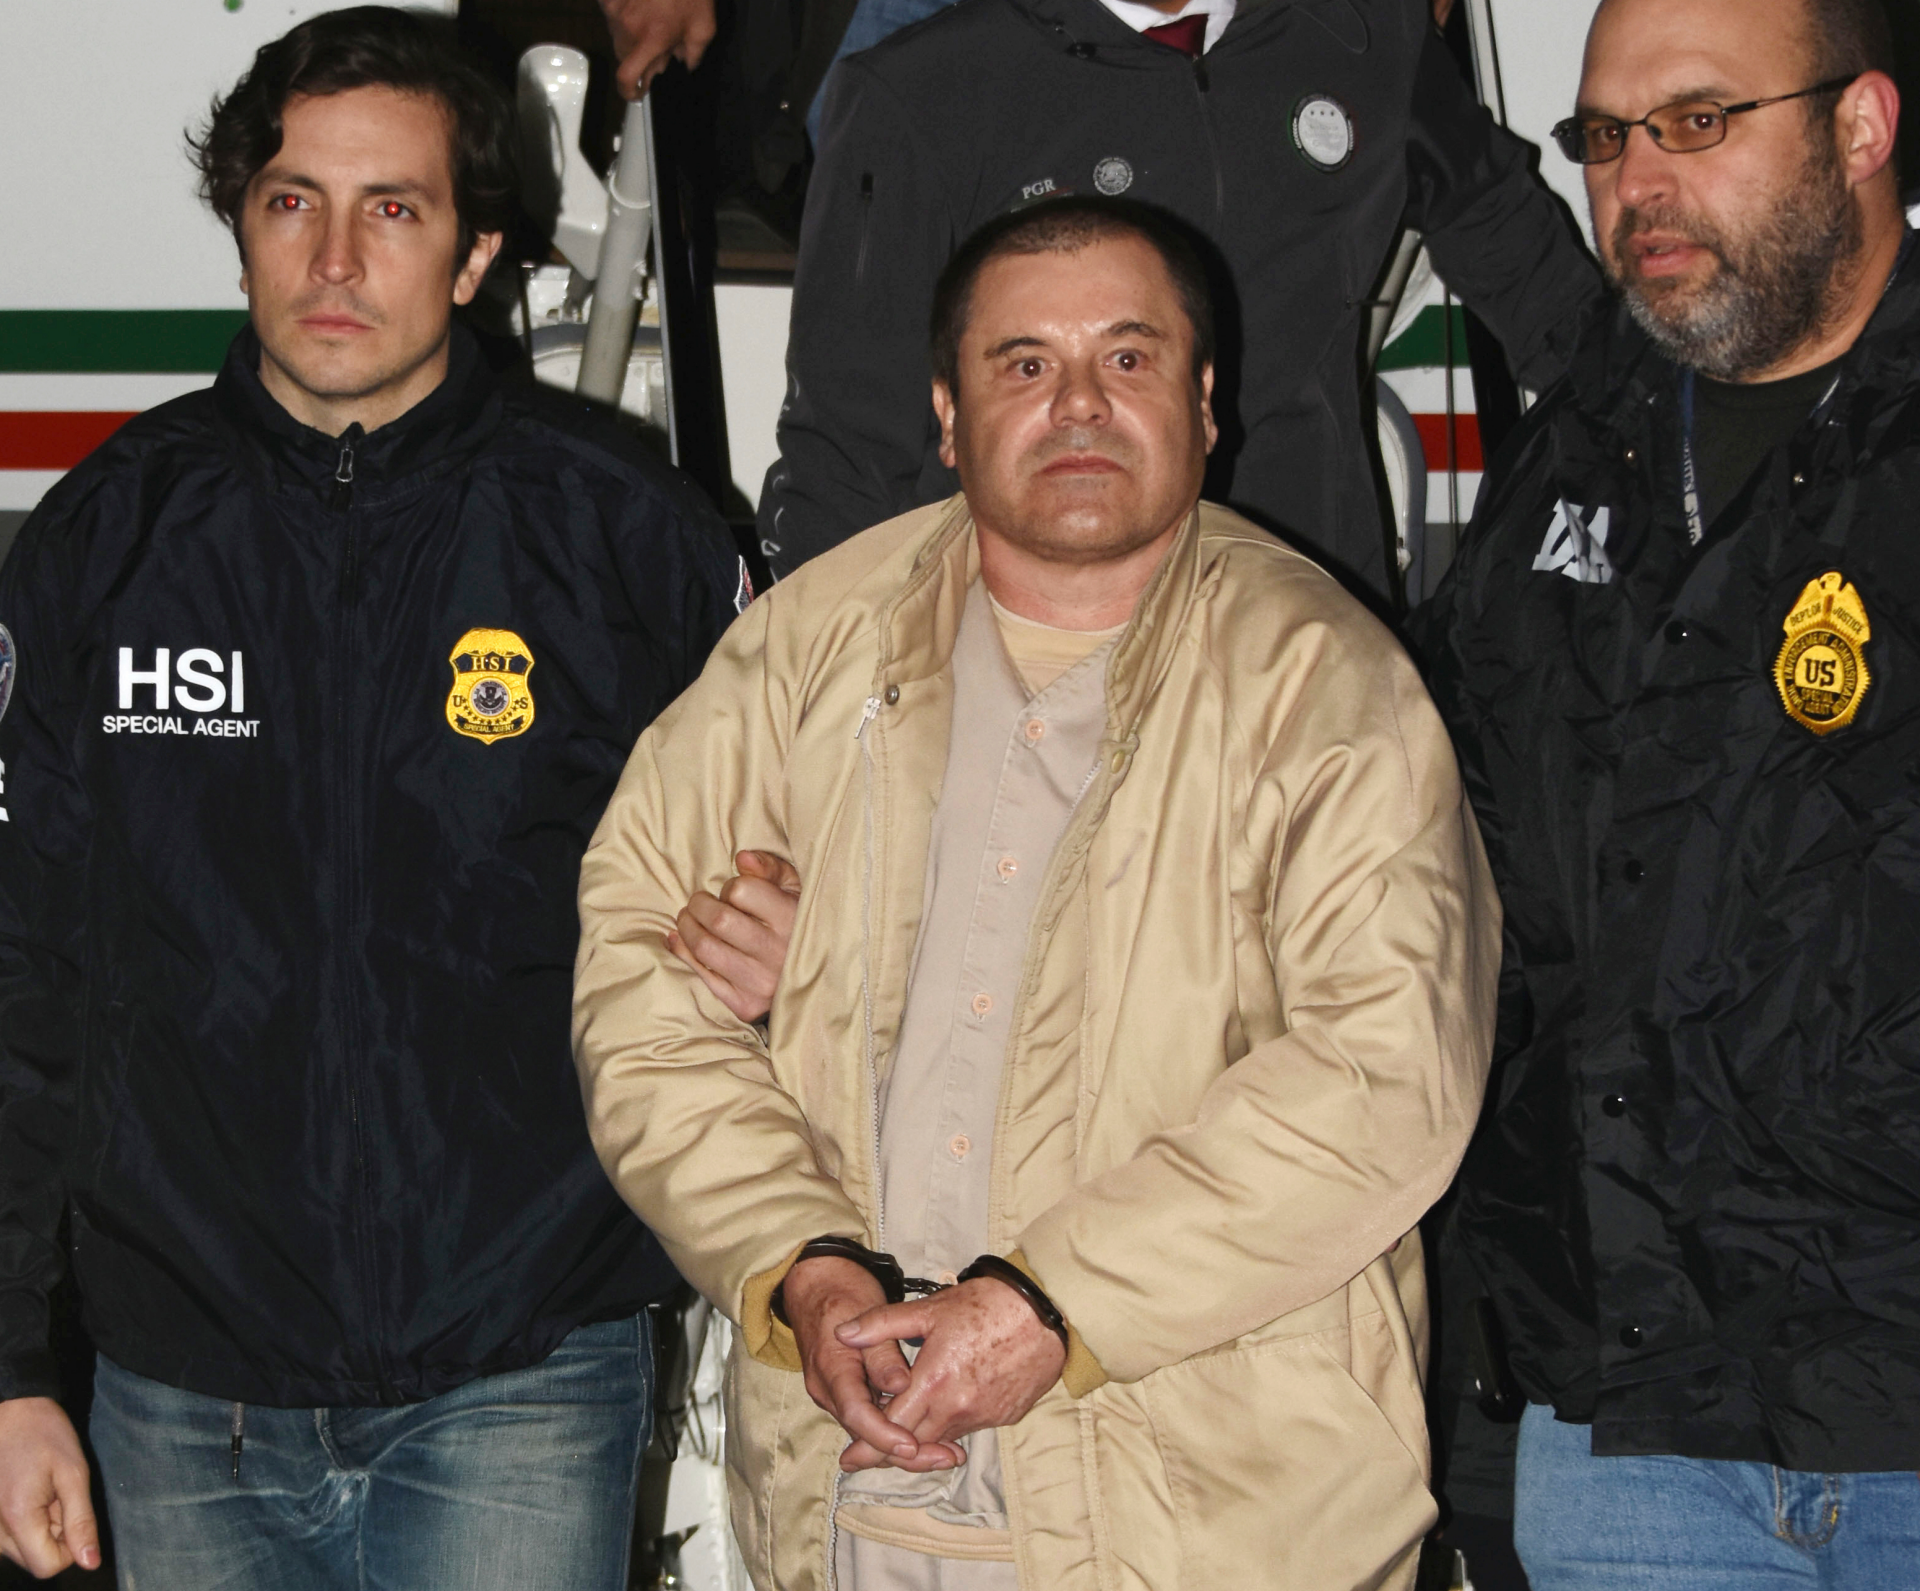 DEA agent who nabbed El Chapo shocked by Mexico's release of drug lord's son: 'There is no police here'